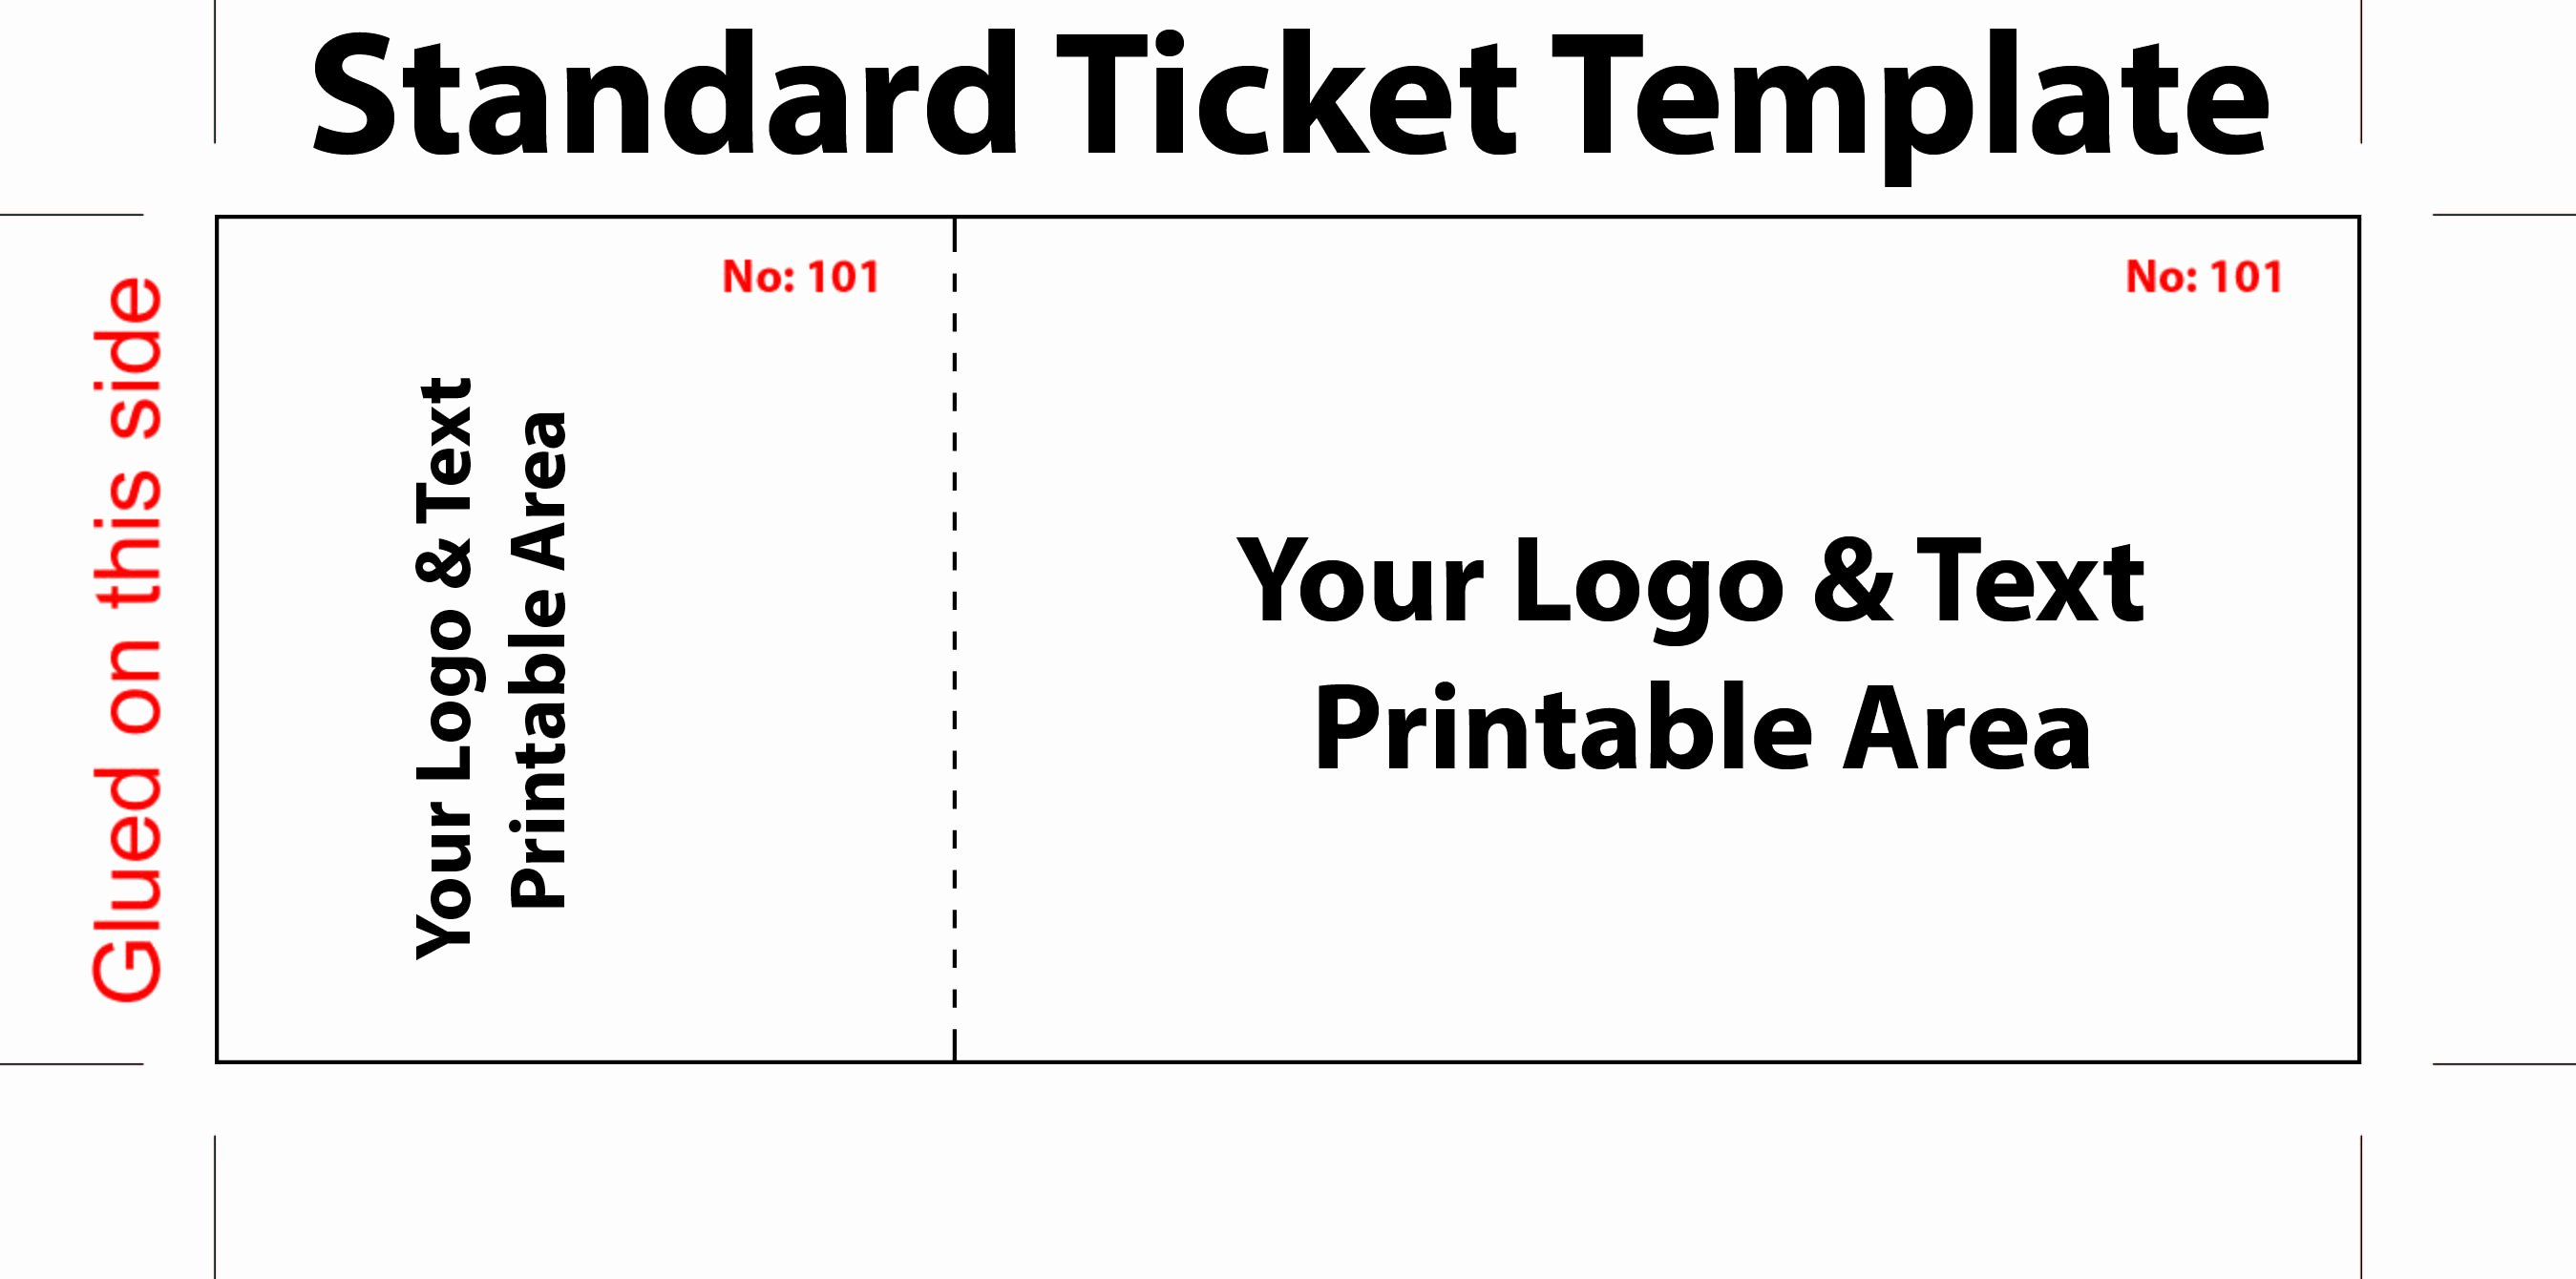 Ticket Design Template Free Elegant Free Editable Standard Ticket Template Example for Concert